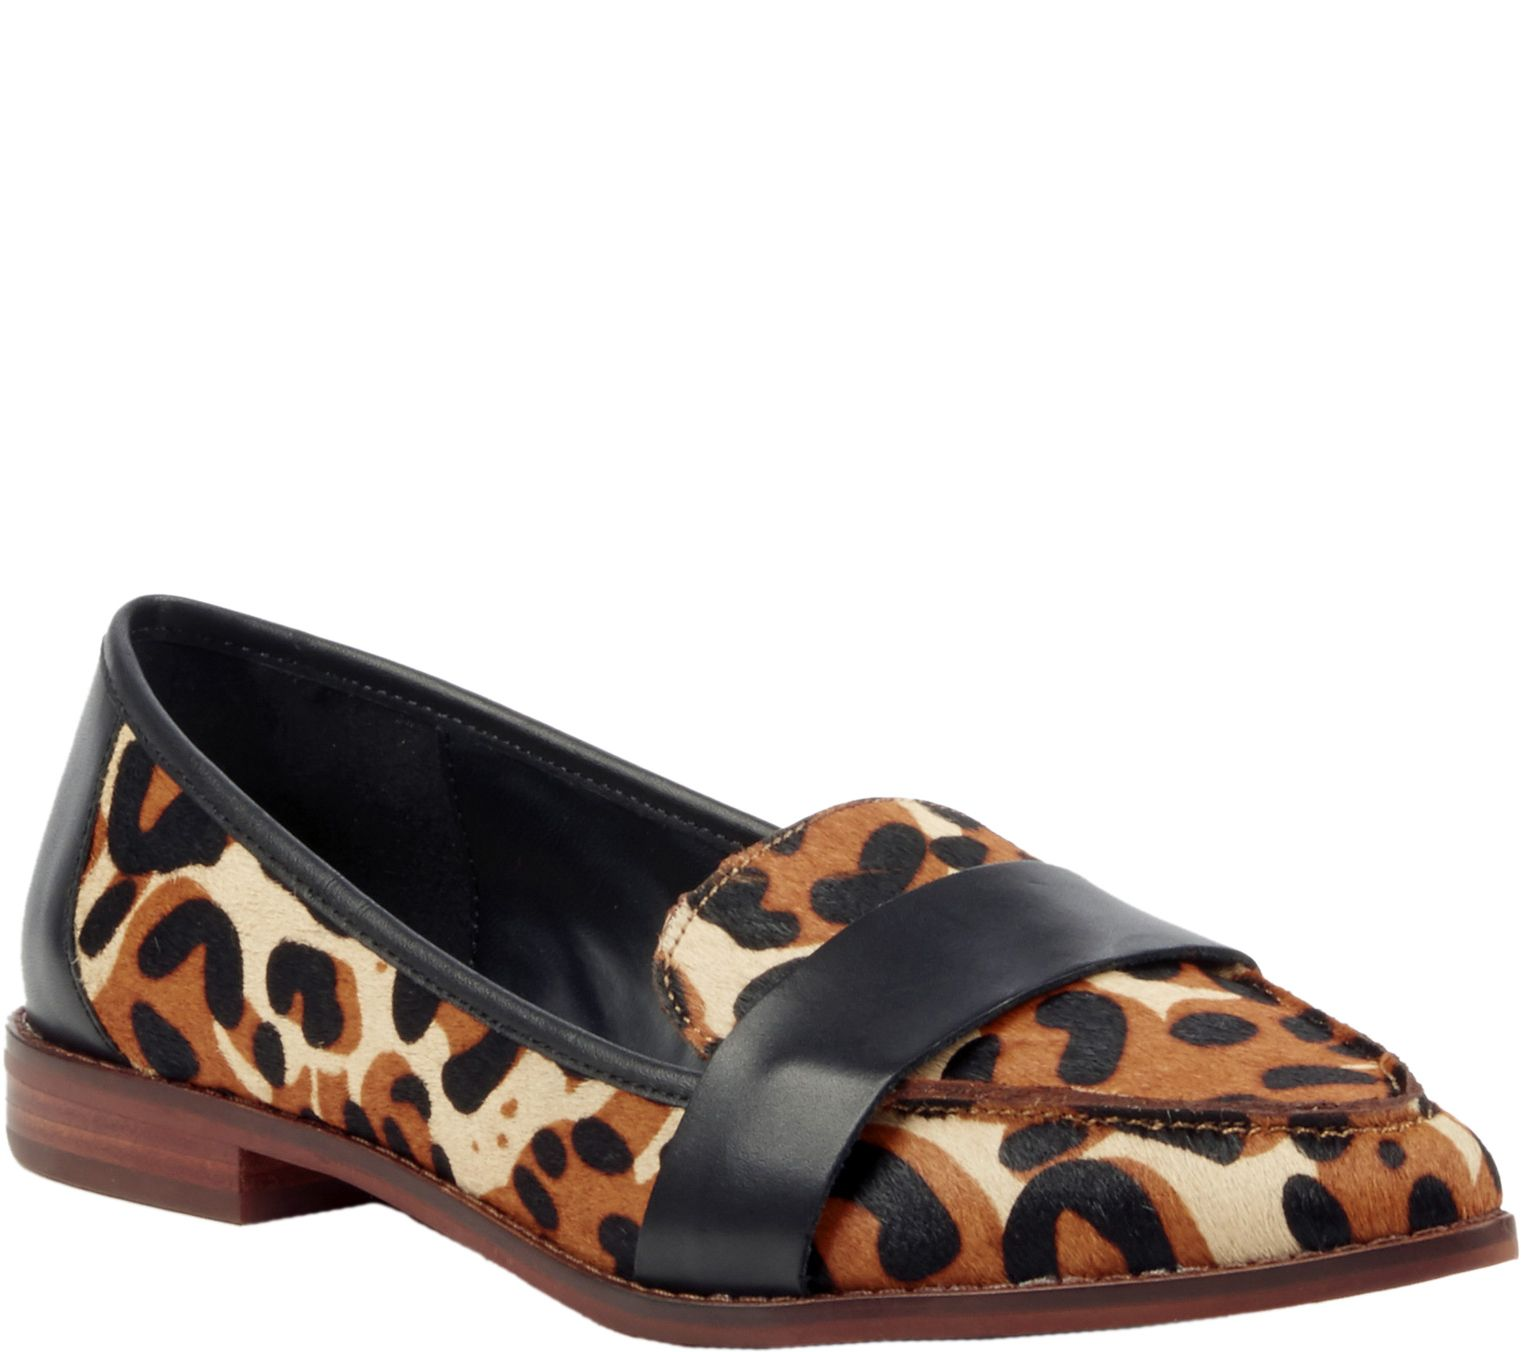 7efaf2d28896 Sole Society Smoking Slipper Loafers - Edie — QVC.com